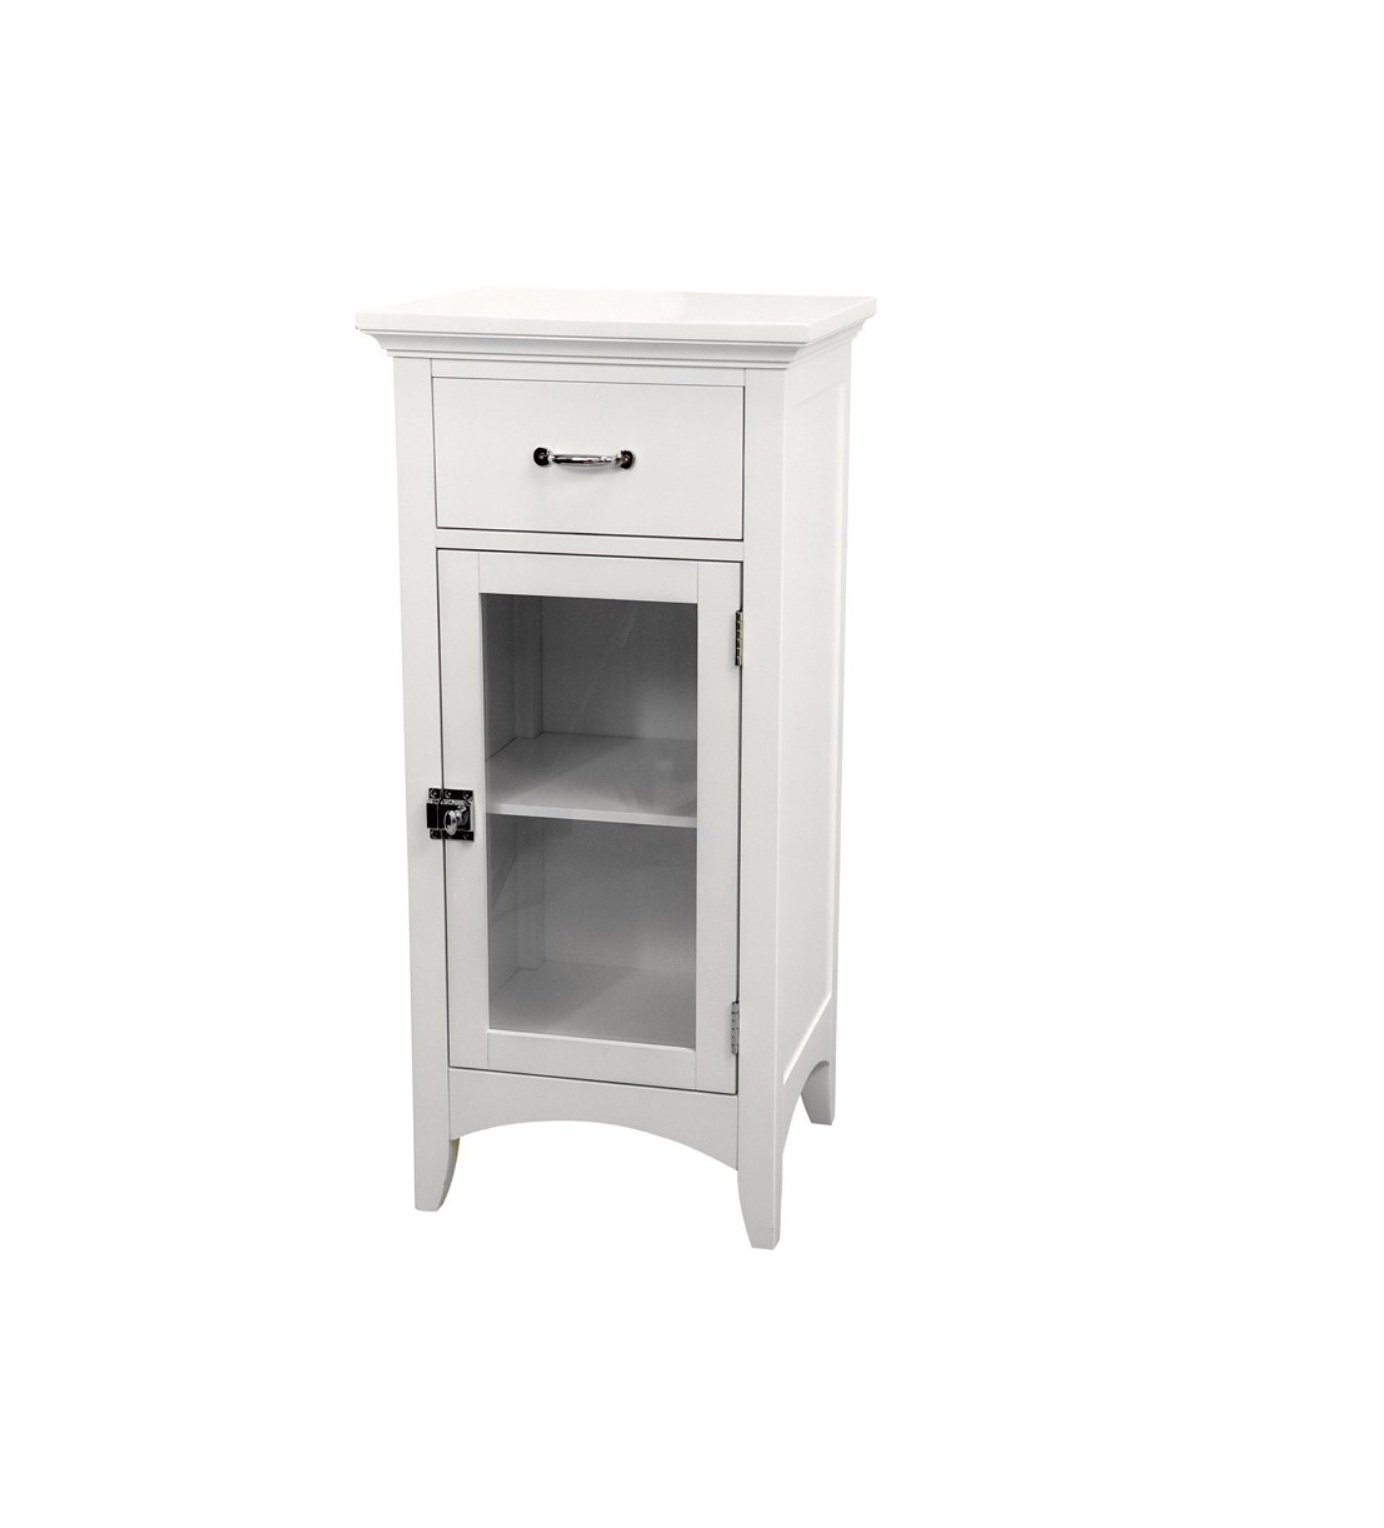 Small bathroom cabinets - Small floor cabinet for bathroom ...